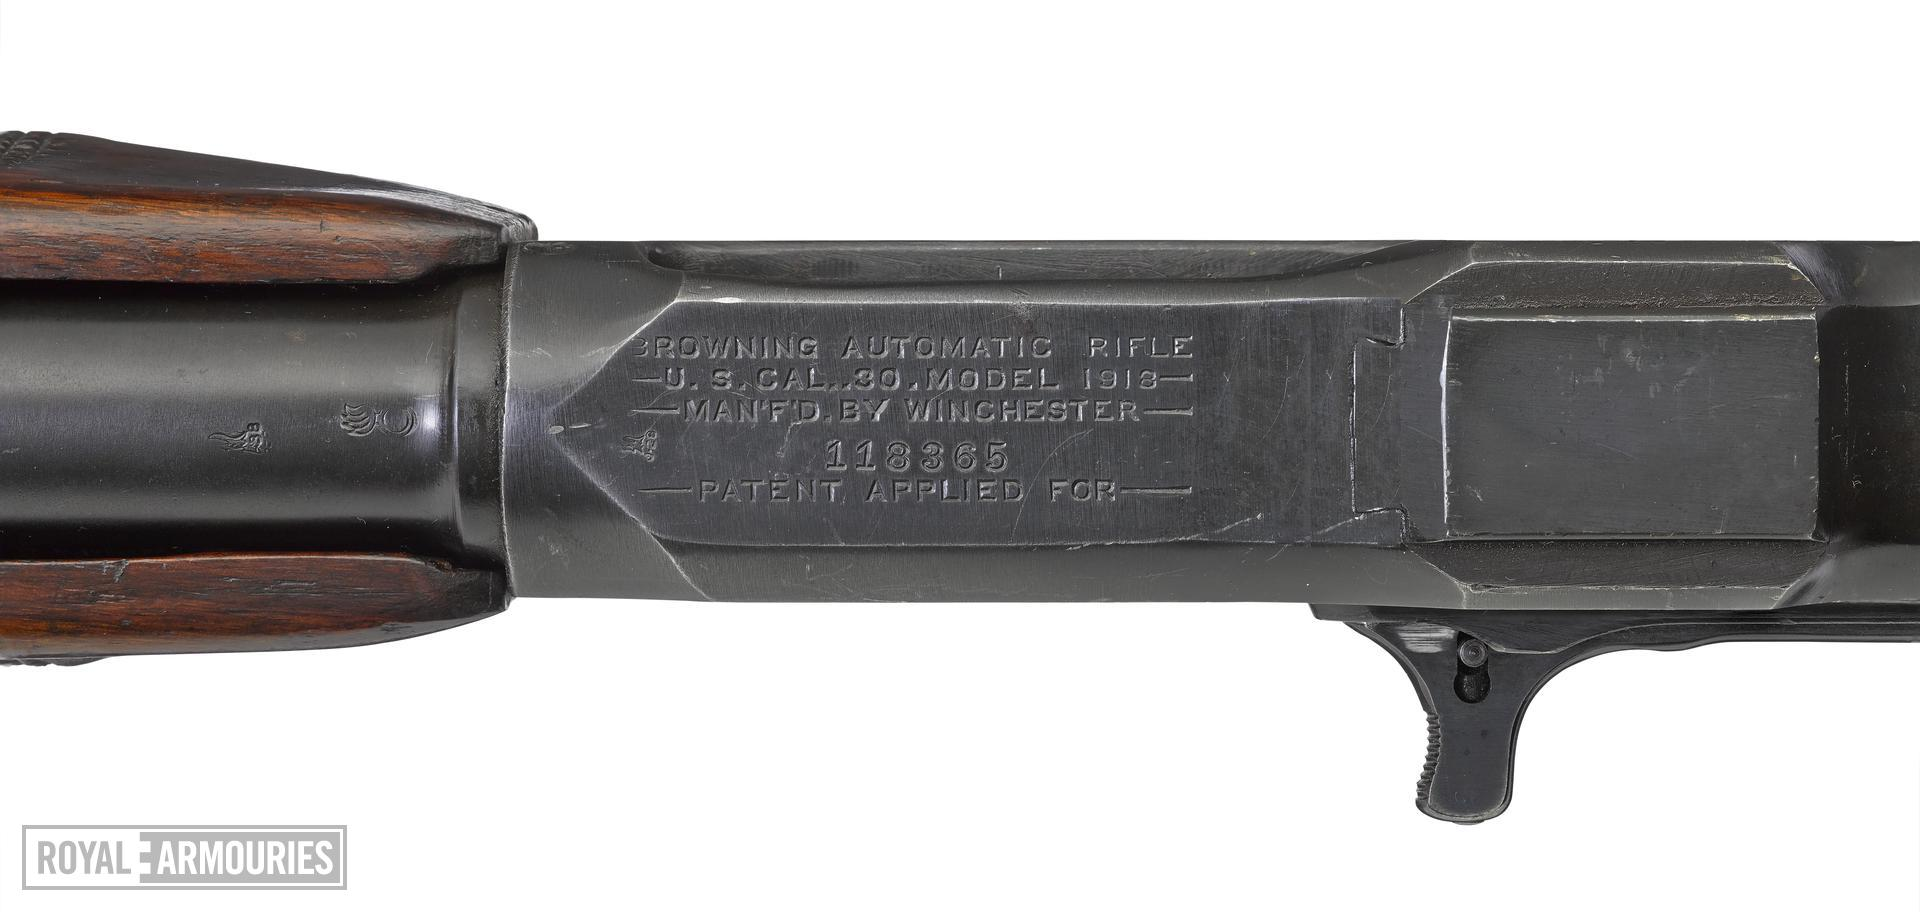 Browning Model 1918 centrefire automatic light machine gun (Browning Automatic Rifle / BAR), American, 1918